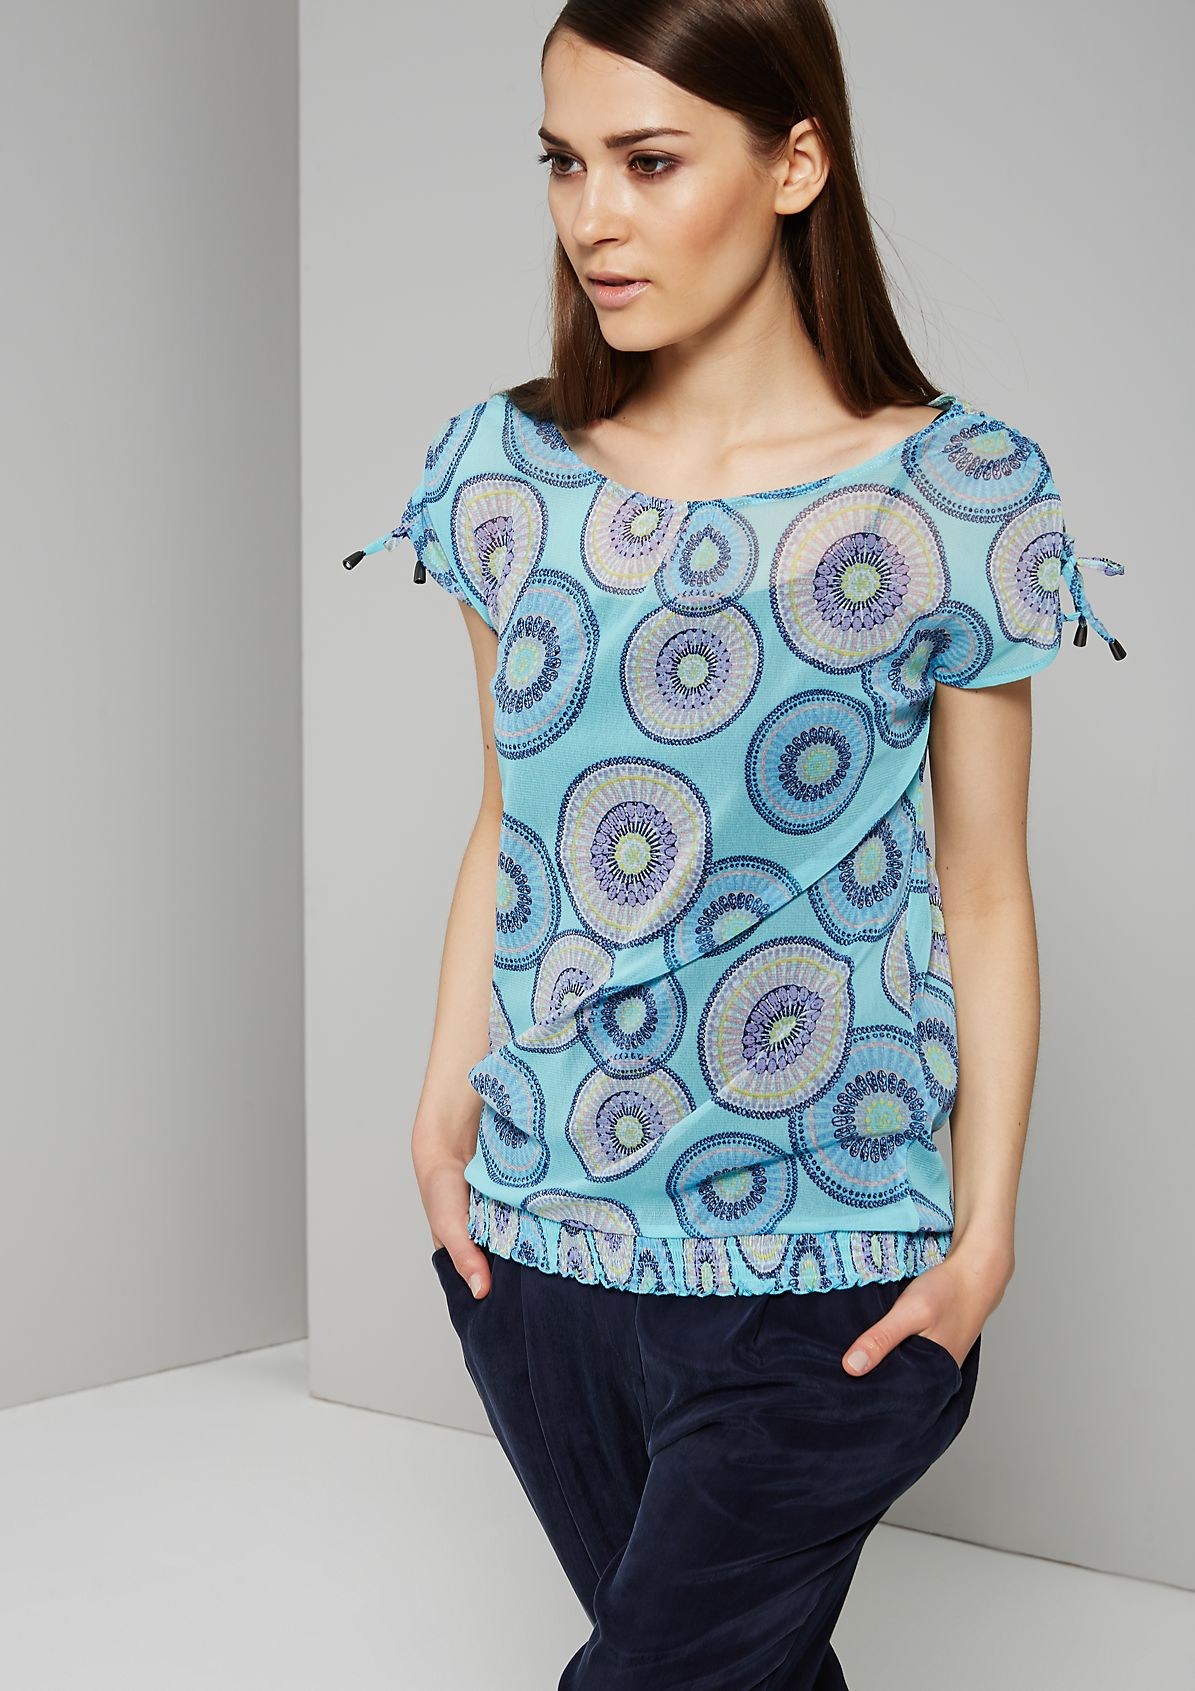 Delicate mesh top with a beautiful retro pattern from s.Oliver